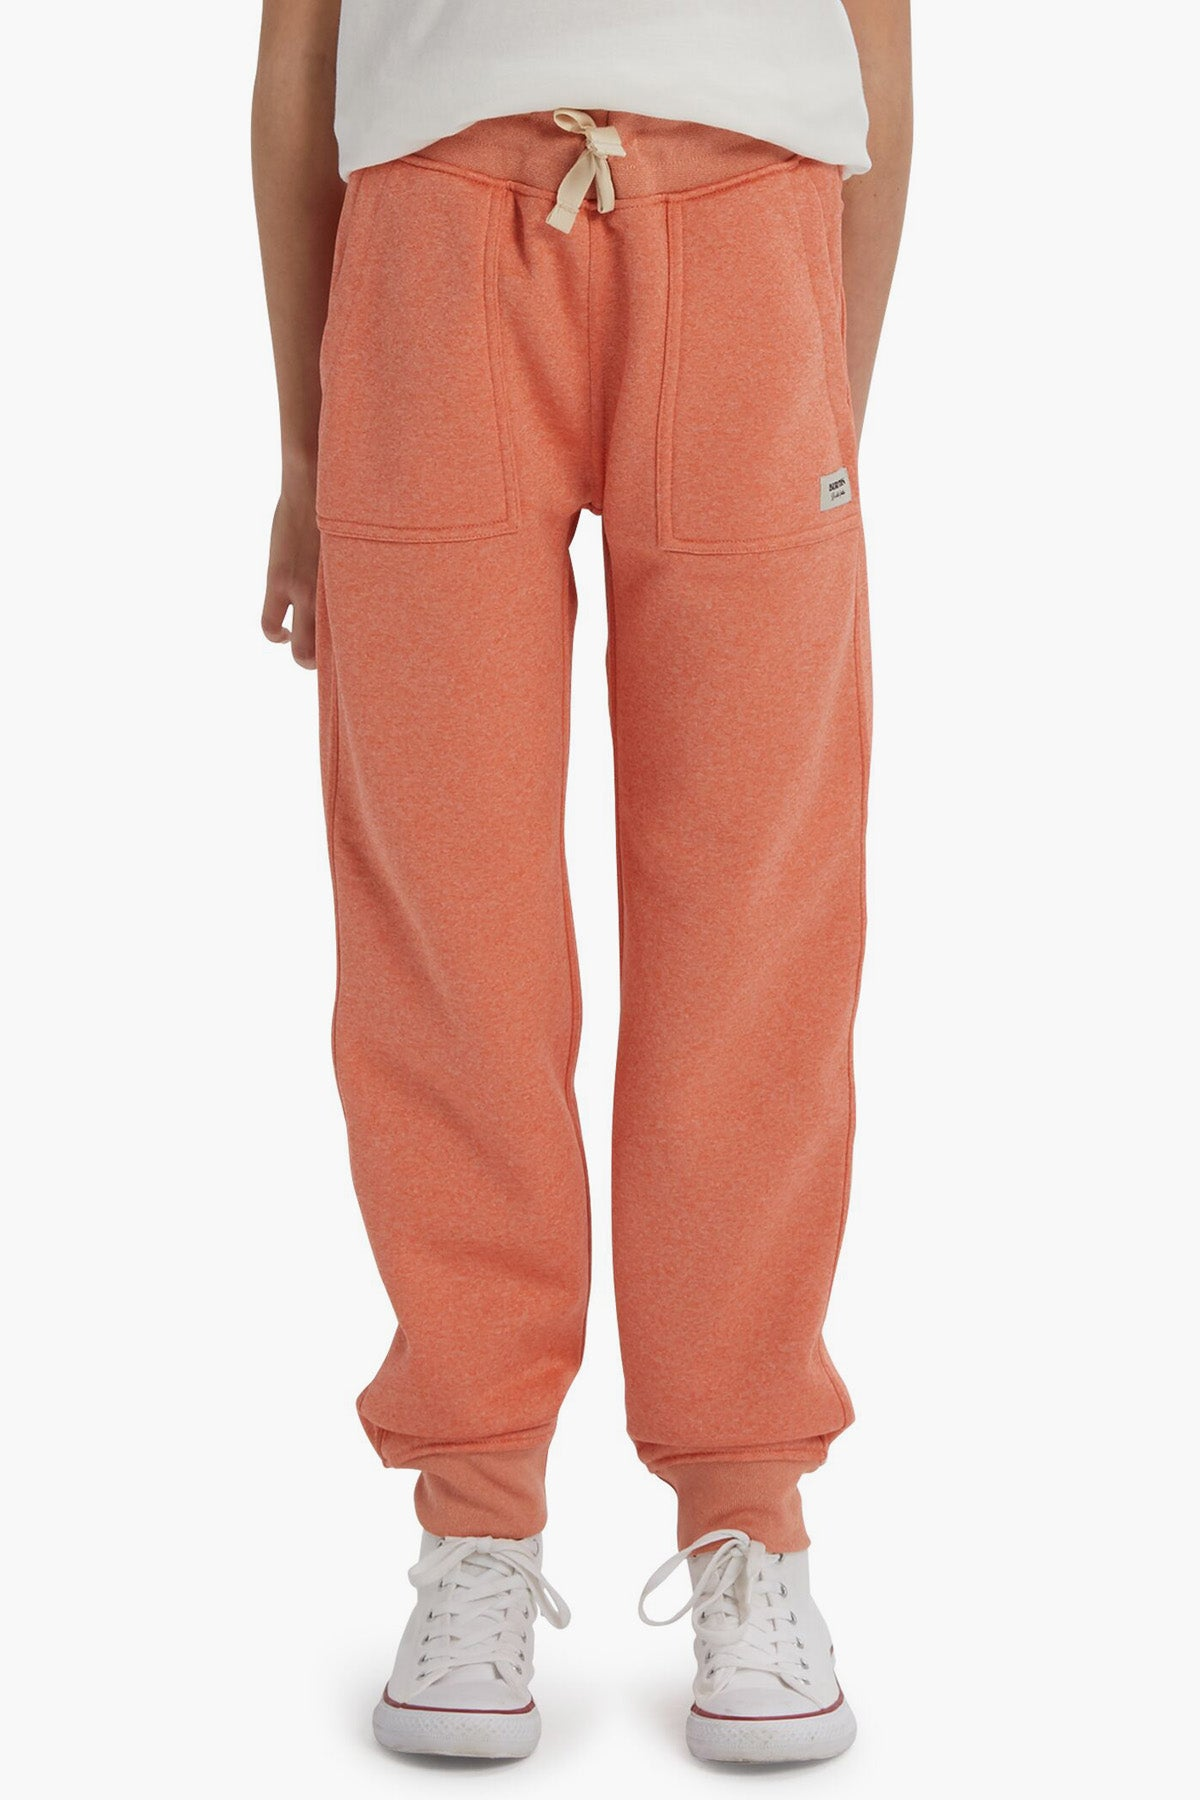 Burton Oak Pant - Crabapple Heather